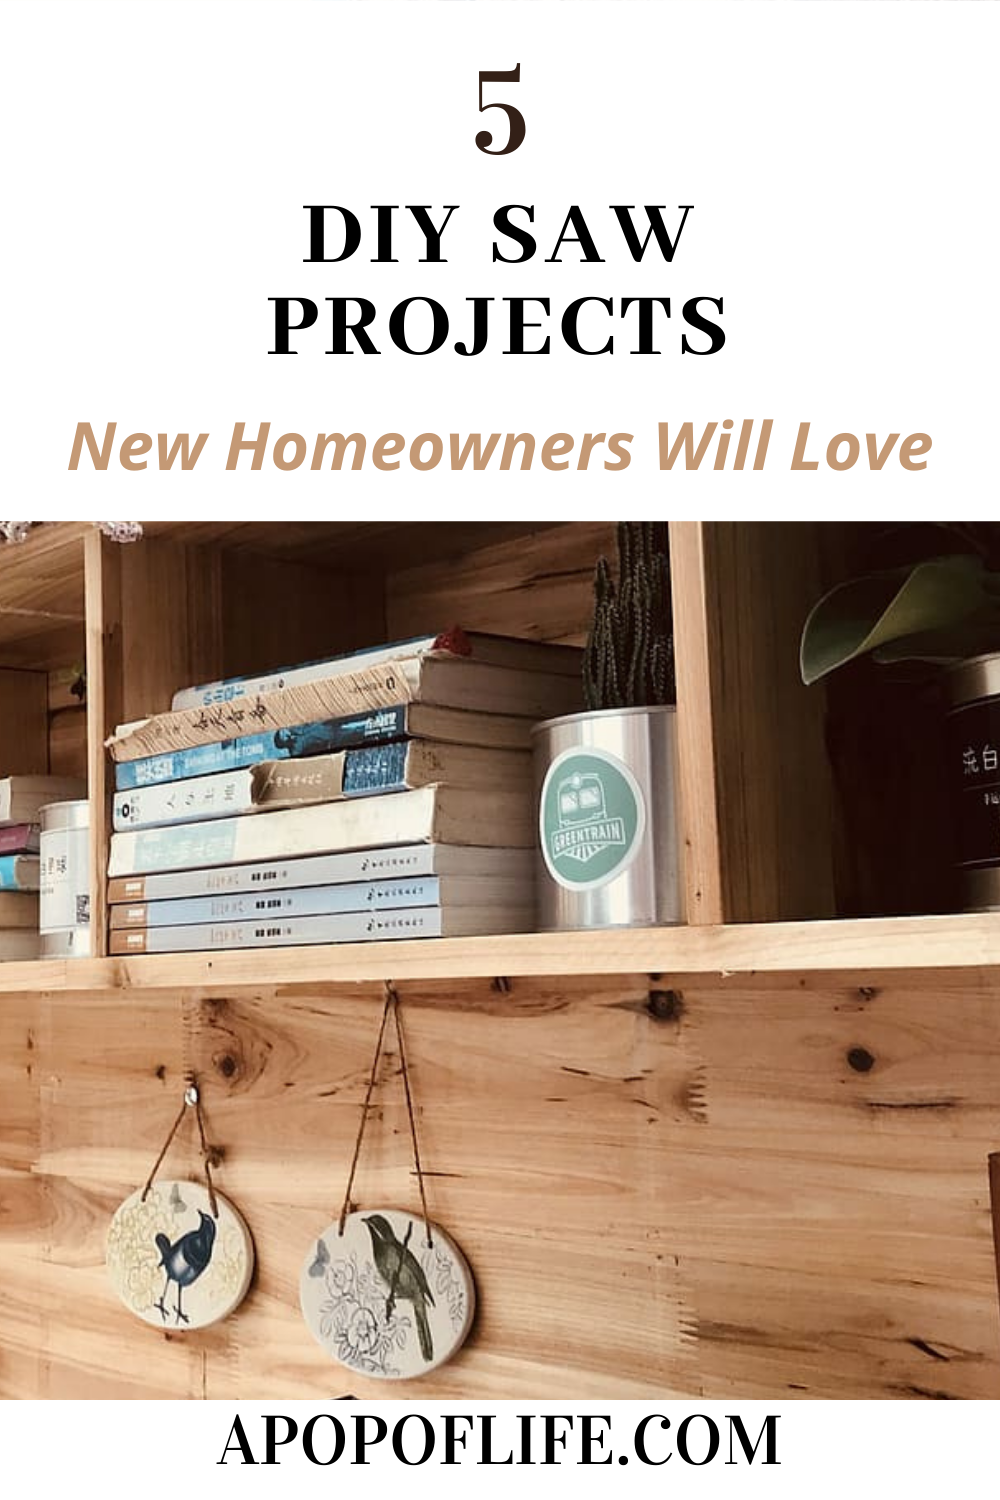 homeowner hacks, homeowner tips, new home ideas, homeowner diy projects, diy saw projects, diy projects for the home, home diy on a budget, remodeling on a budget, decor projects home